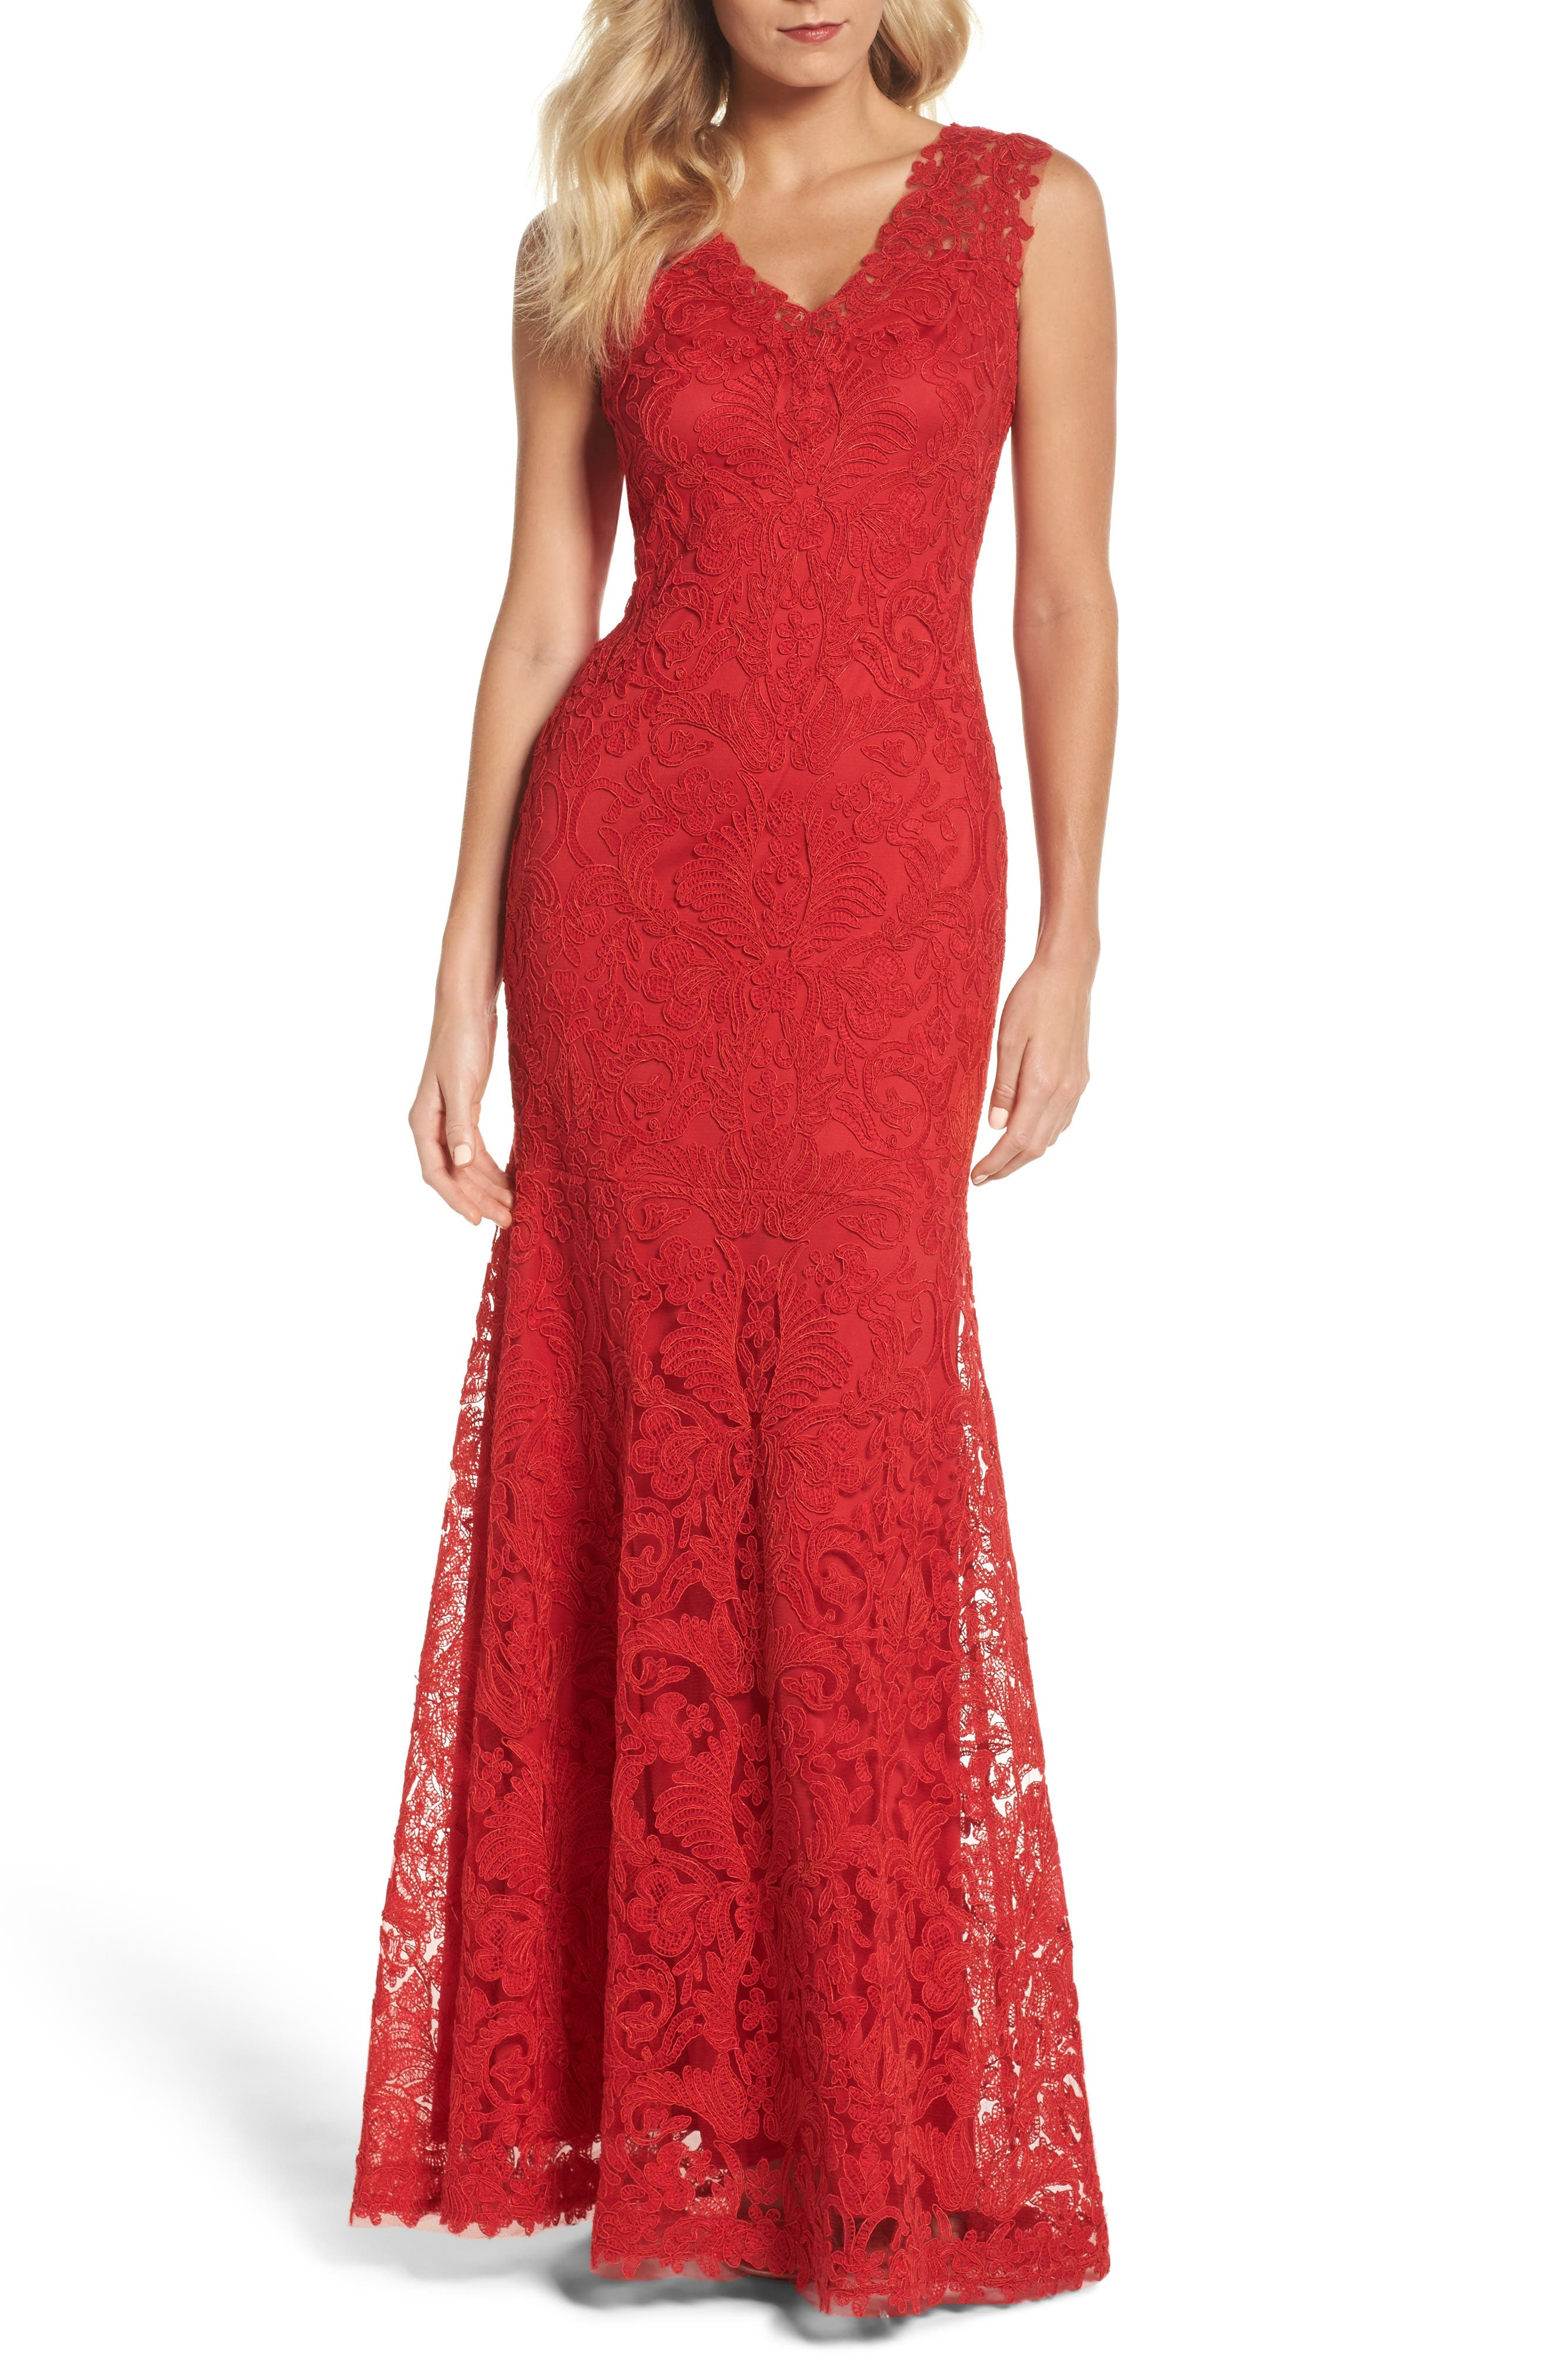 Kelly Embroidered Mermaid Gown,                             Main thumbnail 1, color,                             611